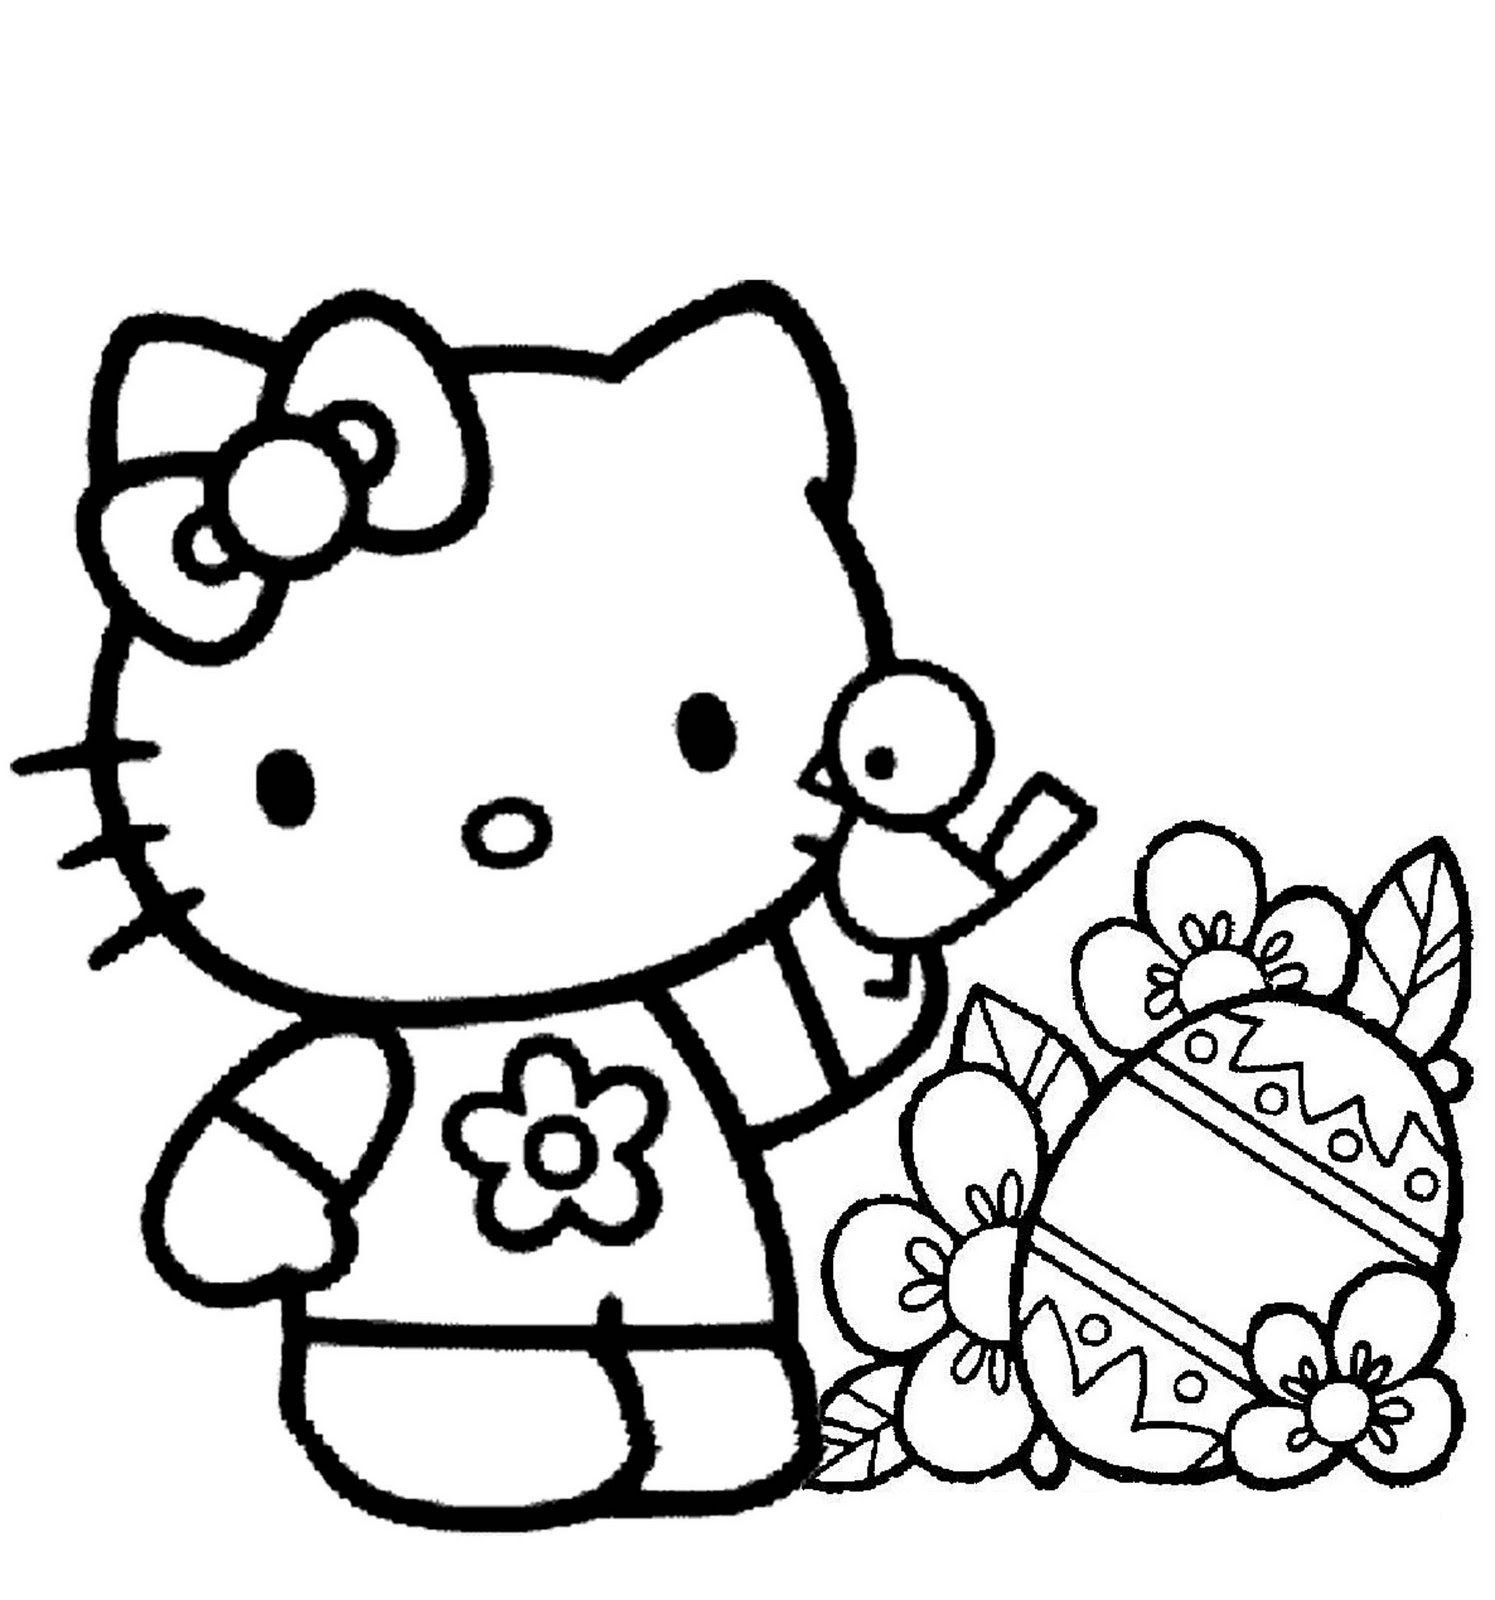 Hello Kitty Coloring Pages Printable Coloring Pages Of Hello Kitty And  Friends For Free - birijus.com